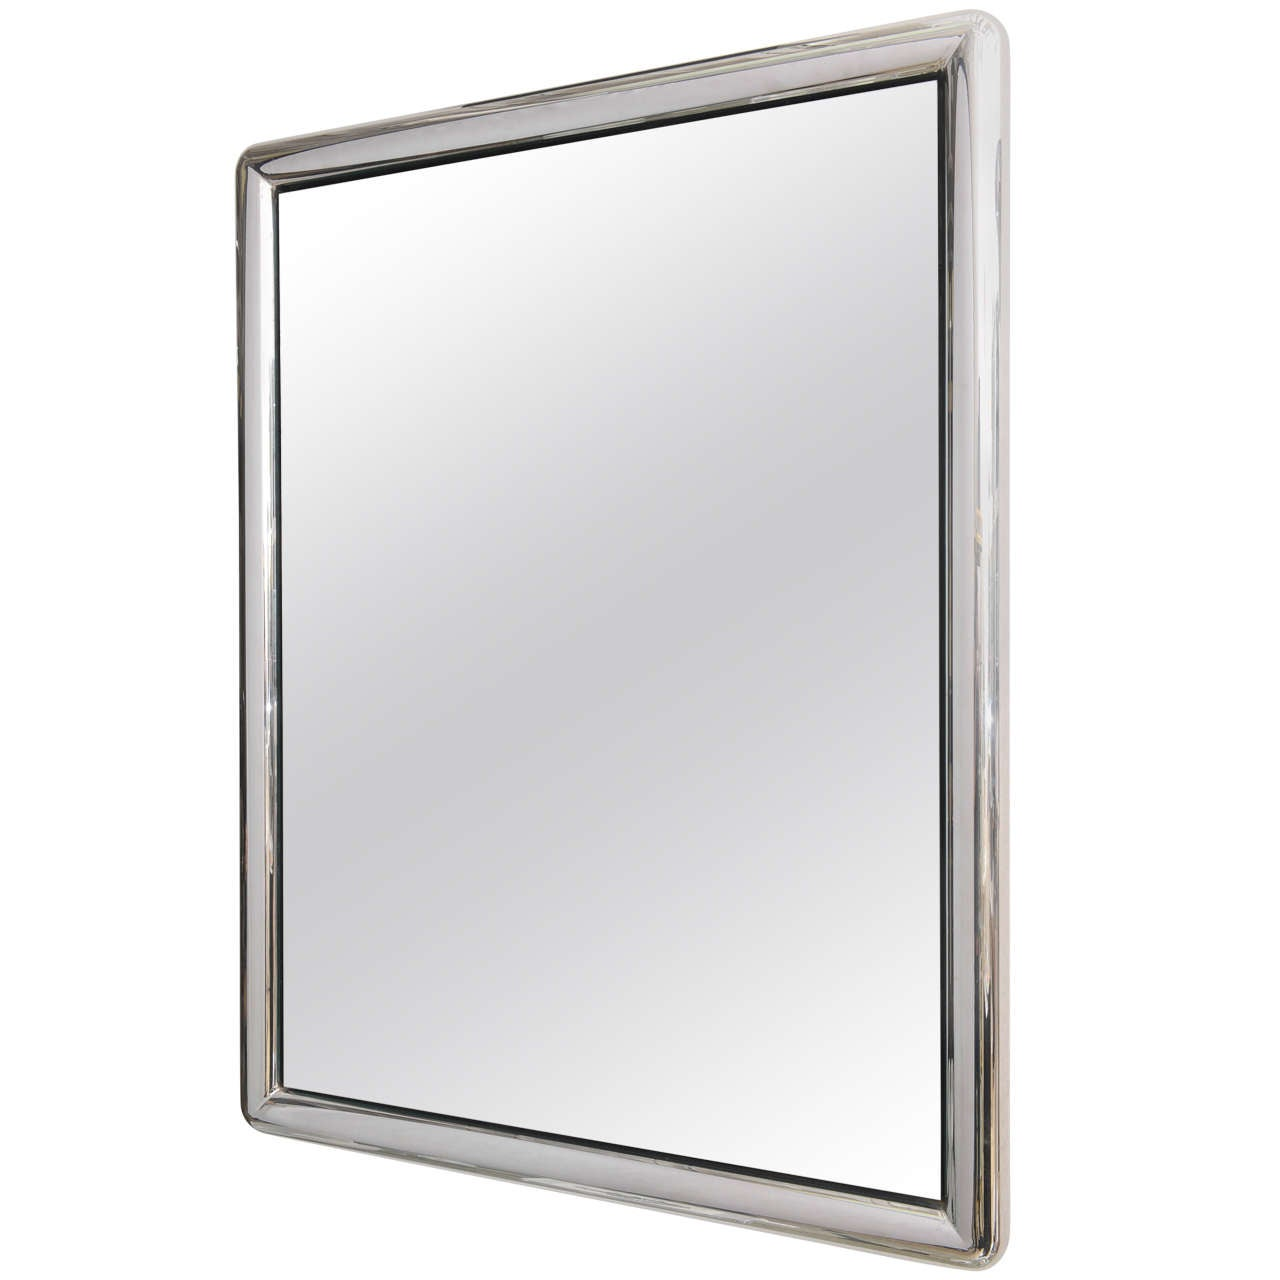 Chrome framed wall mirror at 1stdibs for Mirror framed wall mirror